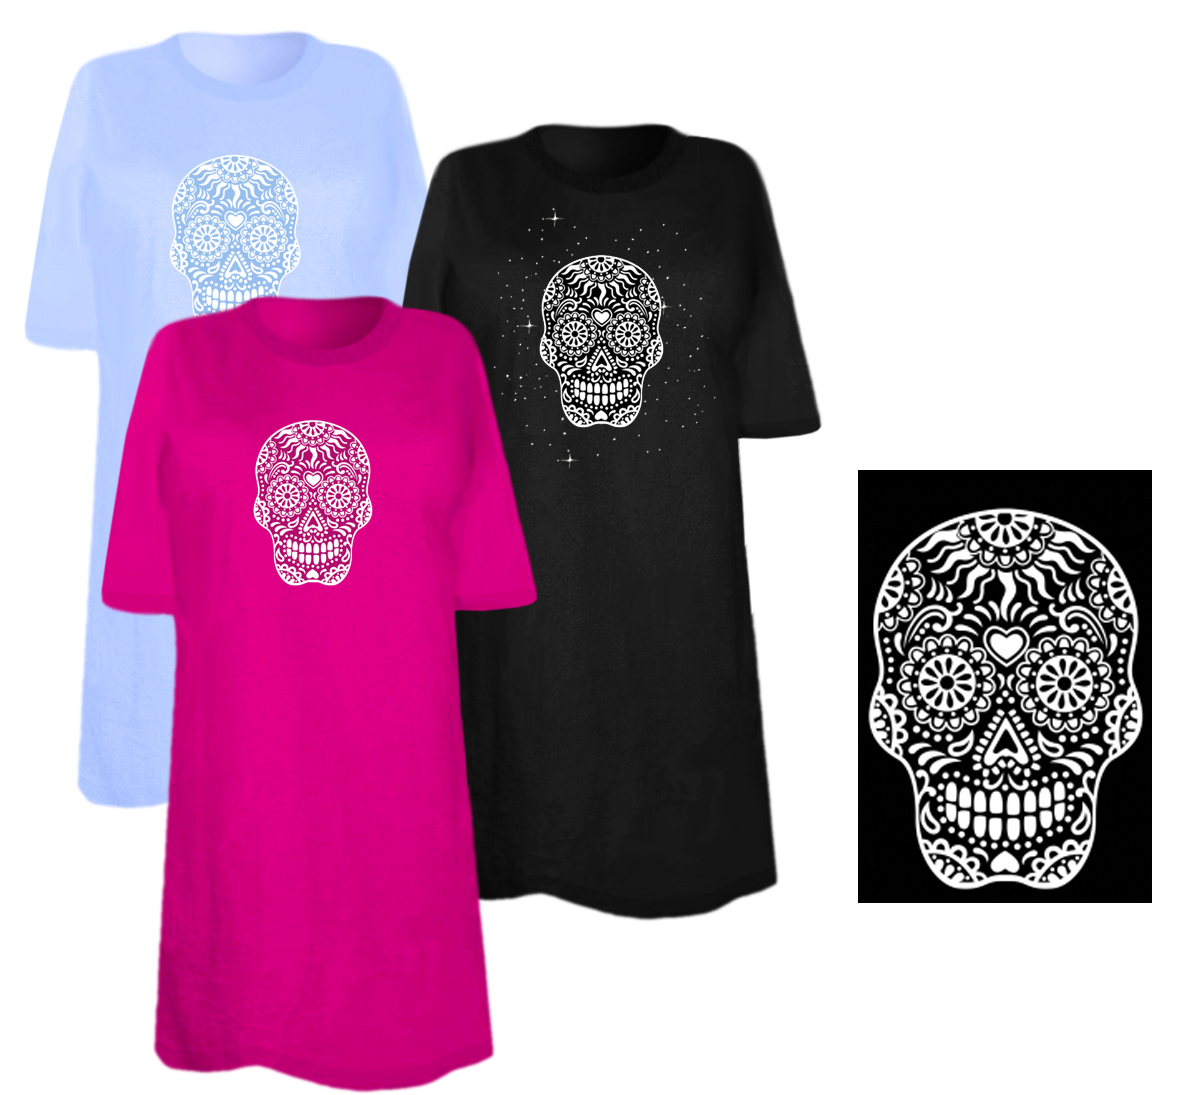 Sale white sugar skull smiling with heart on forehead for 3x shirts on sale